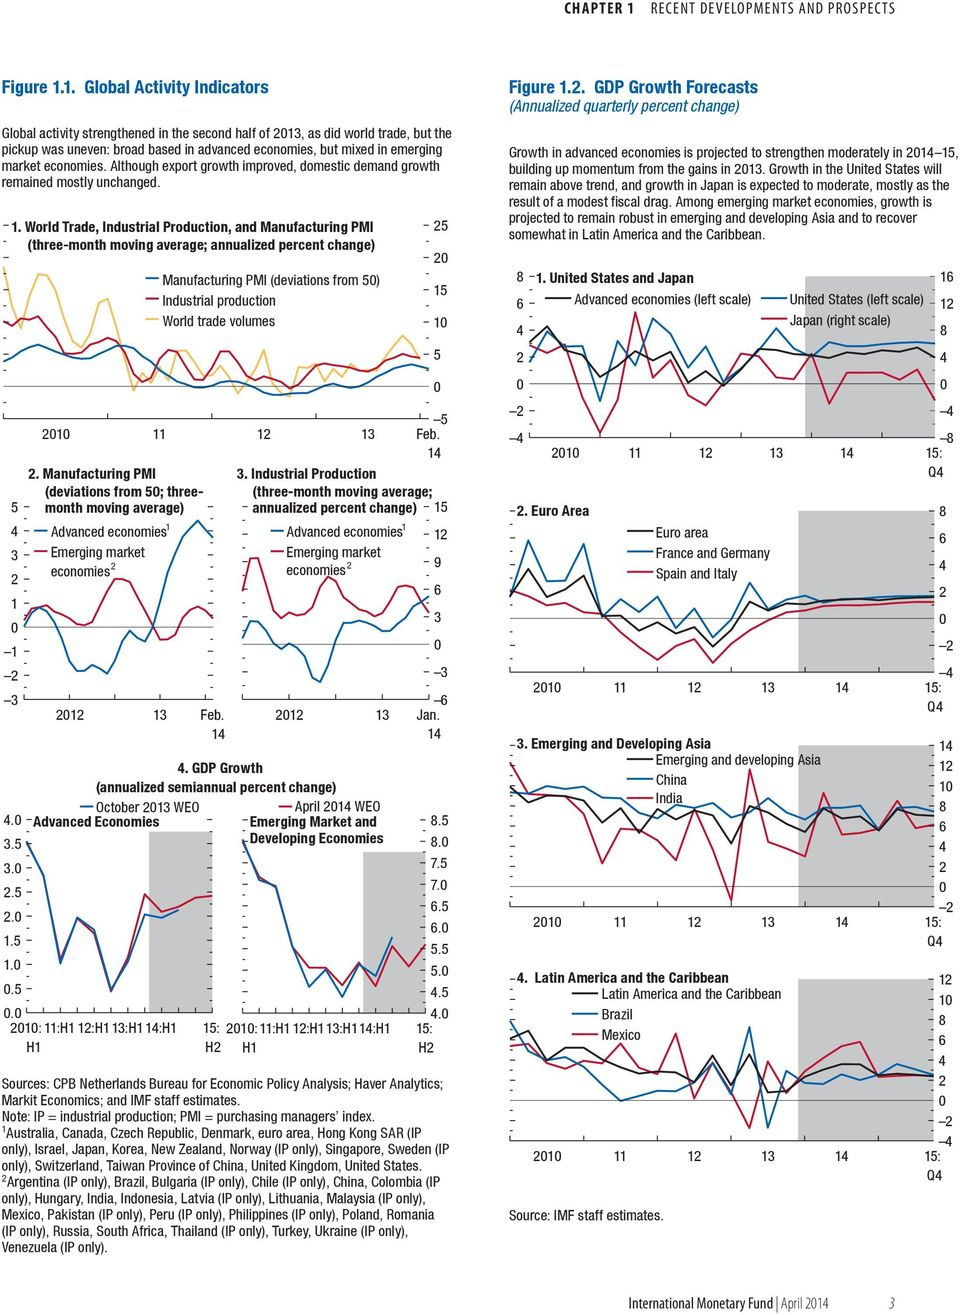 1. Global Activity Indicators Global activity strengthened in the second half of 13, as did world trade, but the pickup was uneven: broad based in advanced economies, but mixed in emerging market